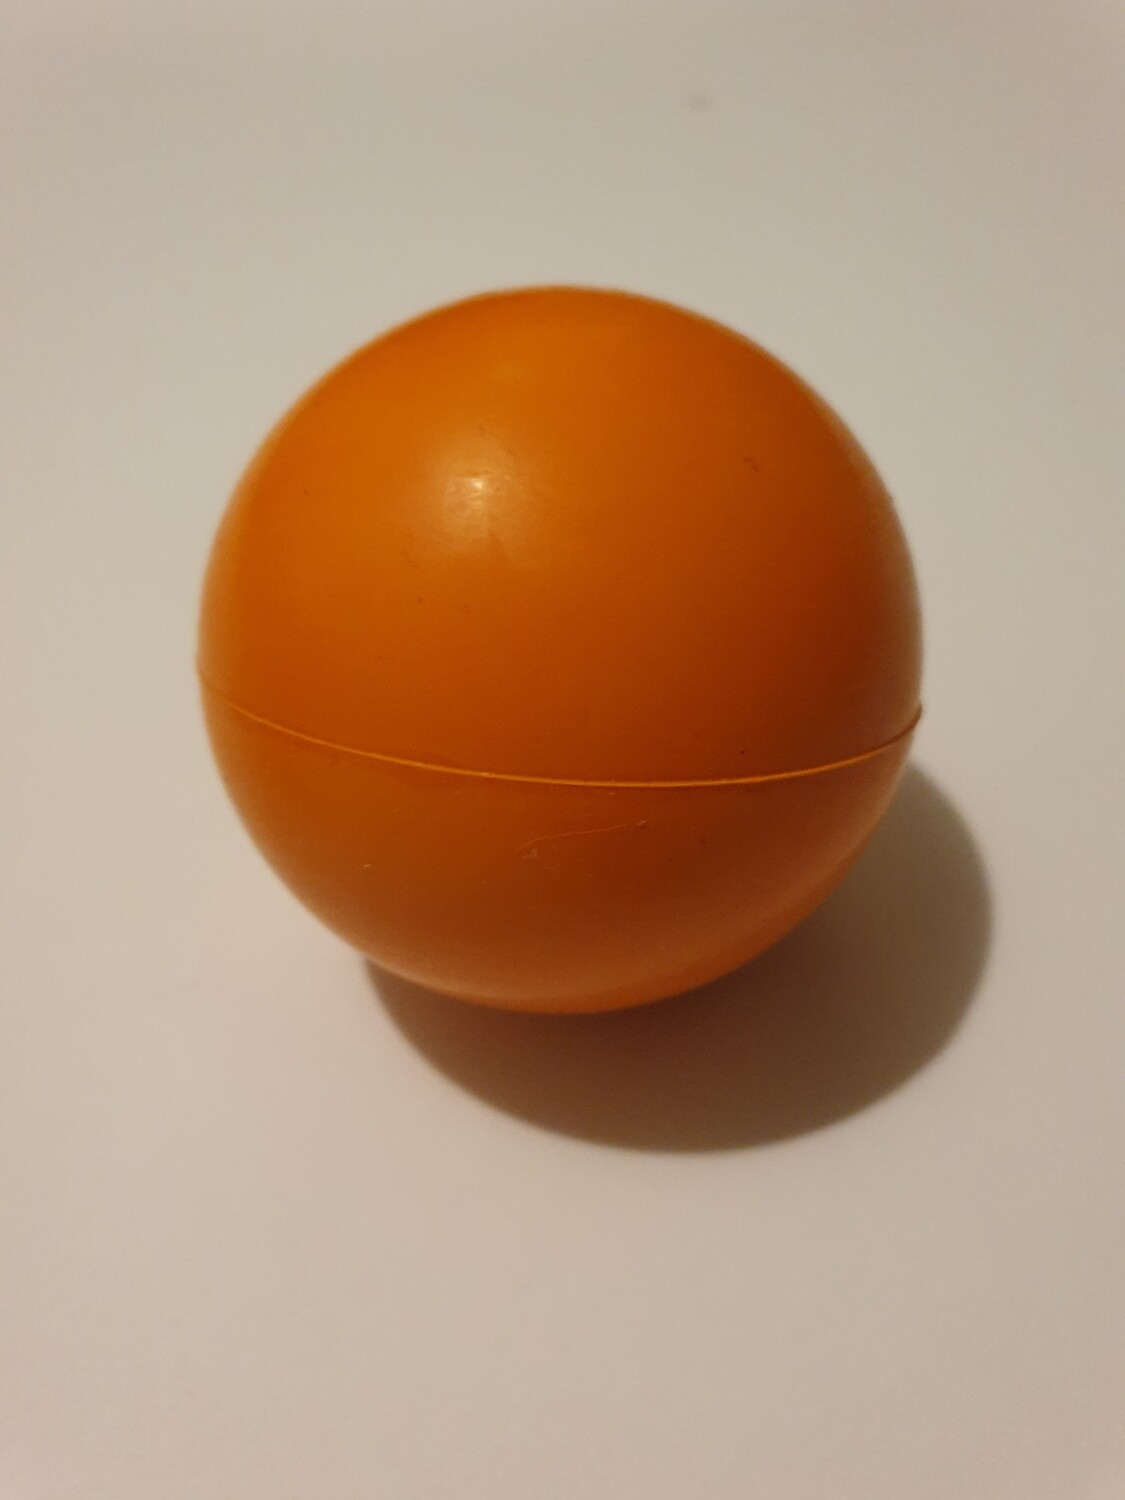 Large Orange Solid Rubber Ball